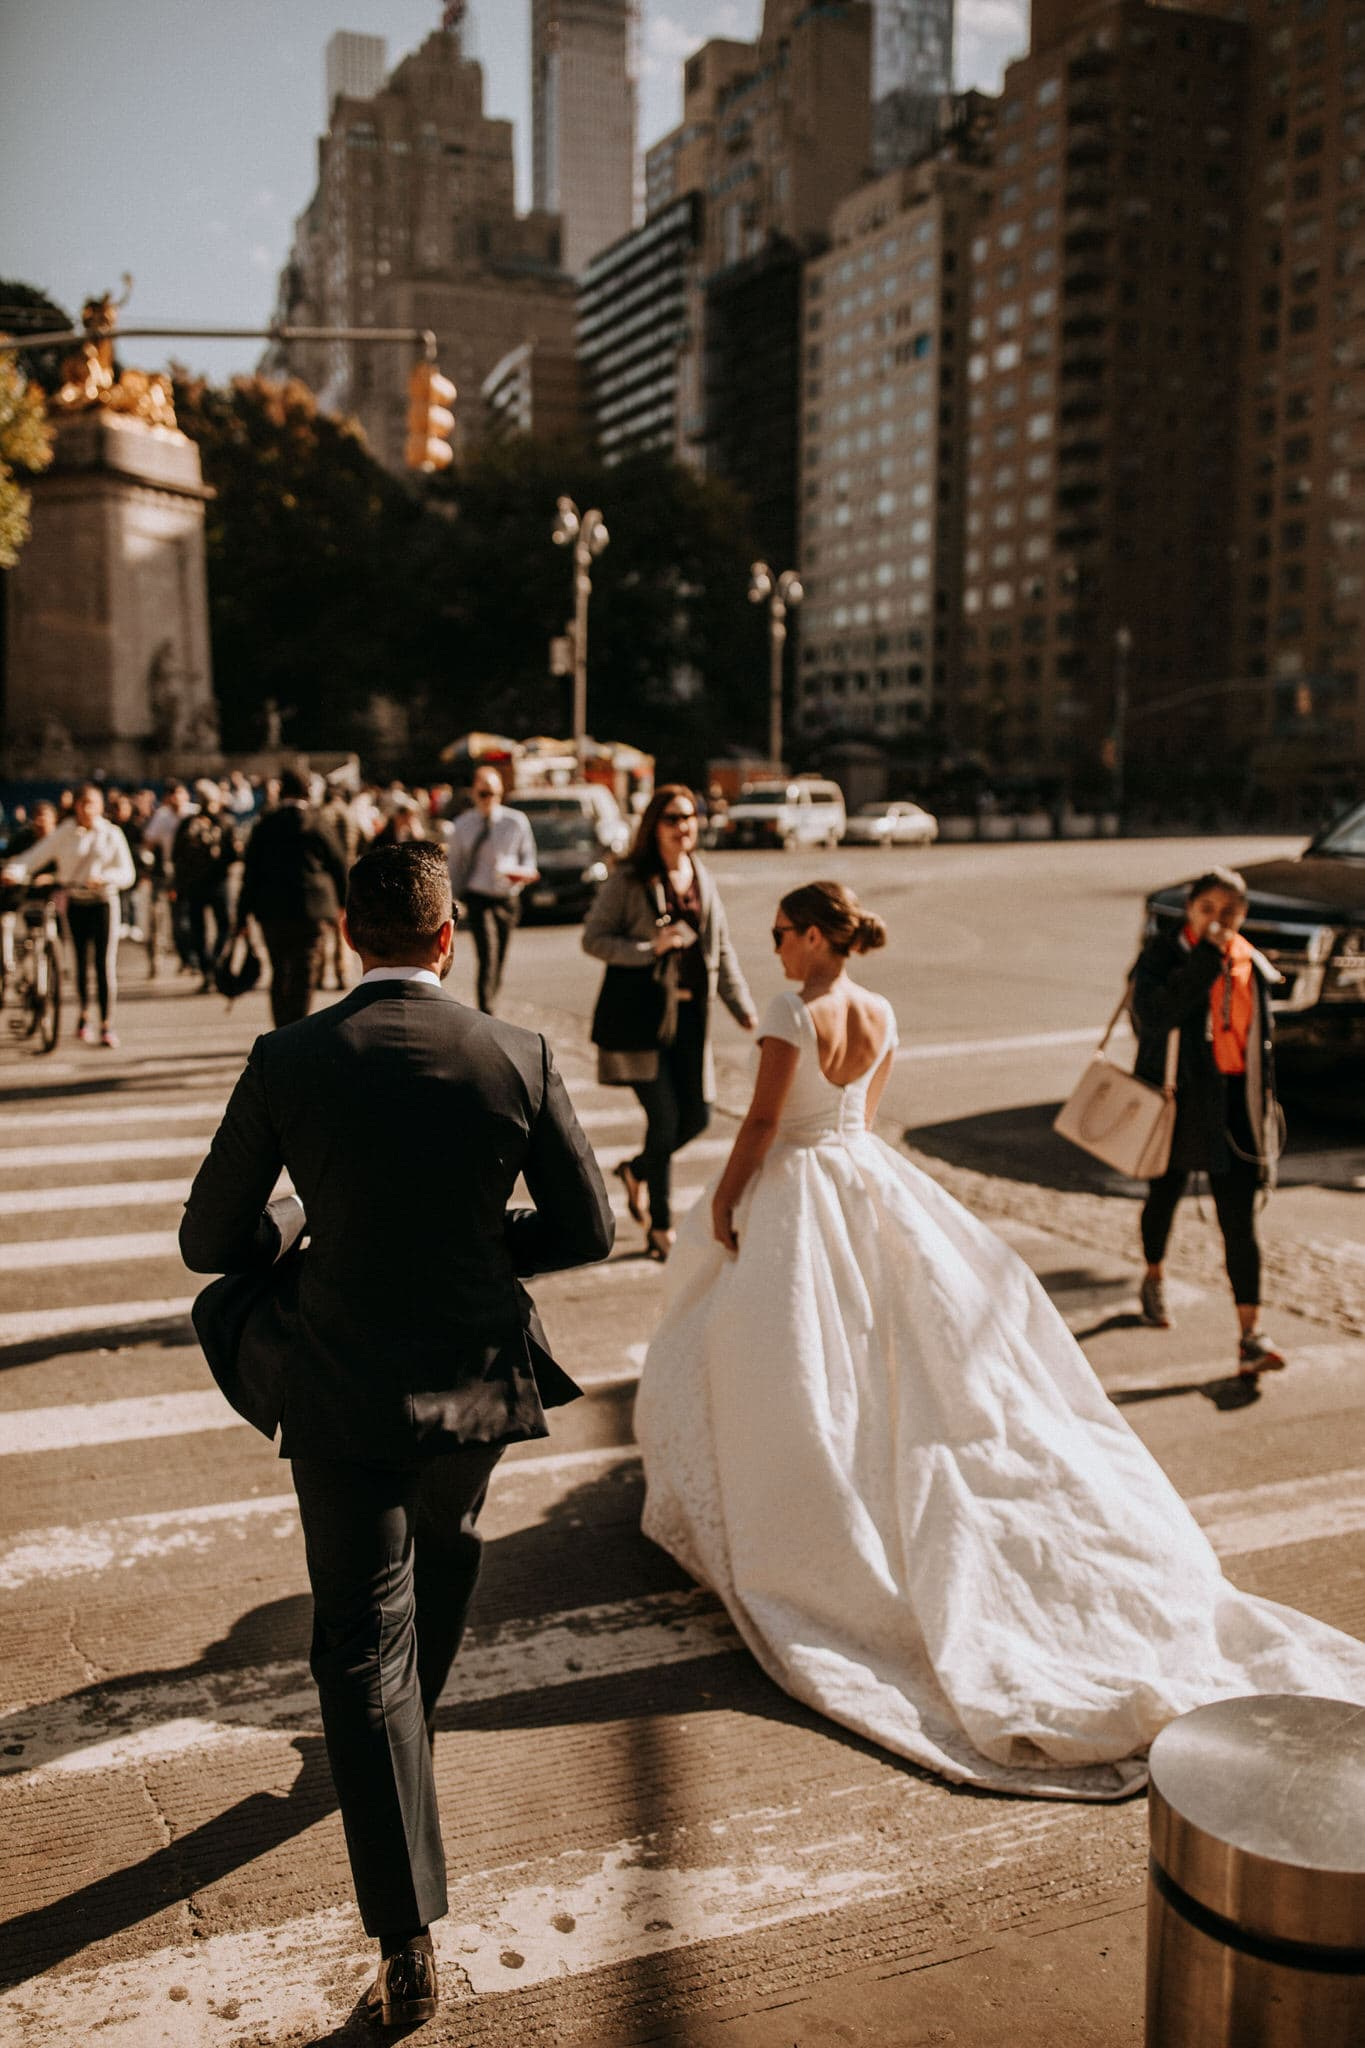 The bride and groom cross the steet to Central Park on their walk through the streets of New York. Wedding Photographer Brent Calis.